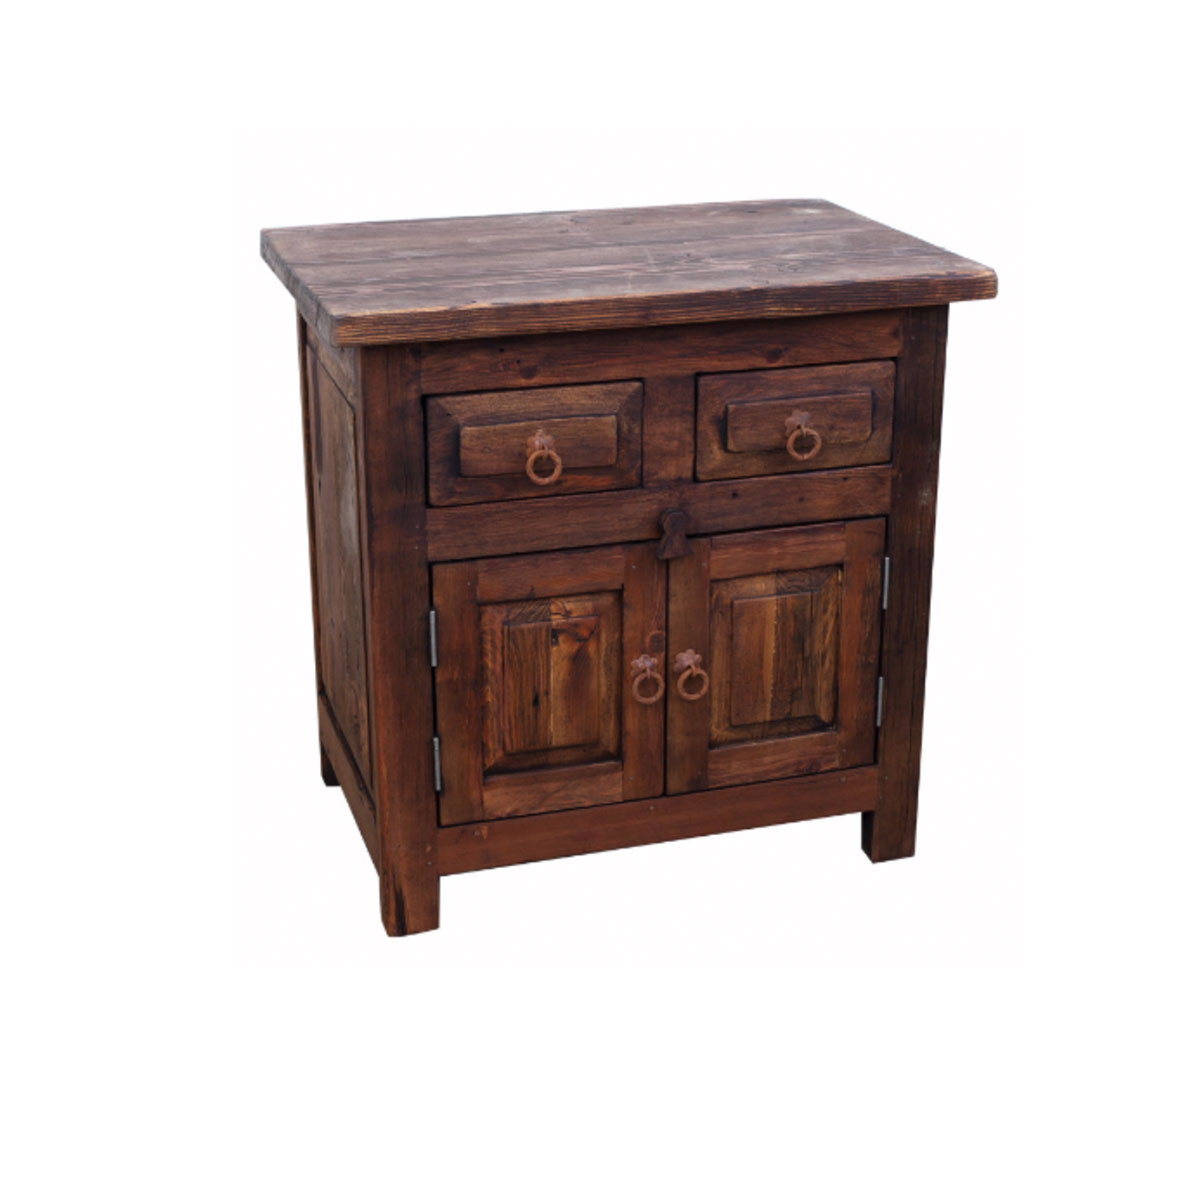 Buy 2 Drawer Rustic Bathroom Vanity Online Perfect For A